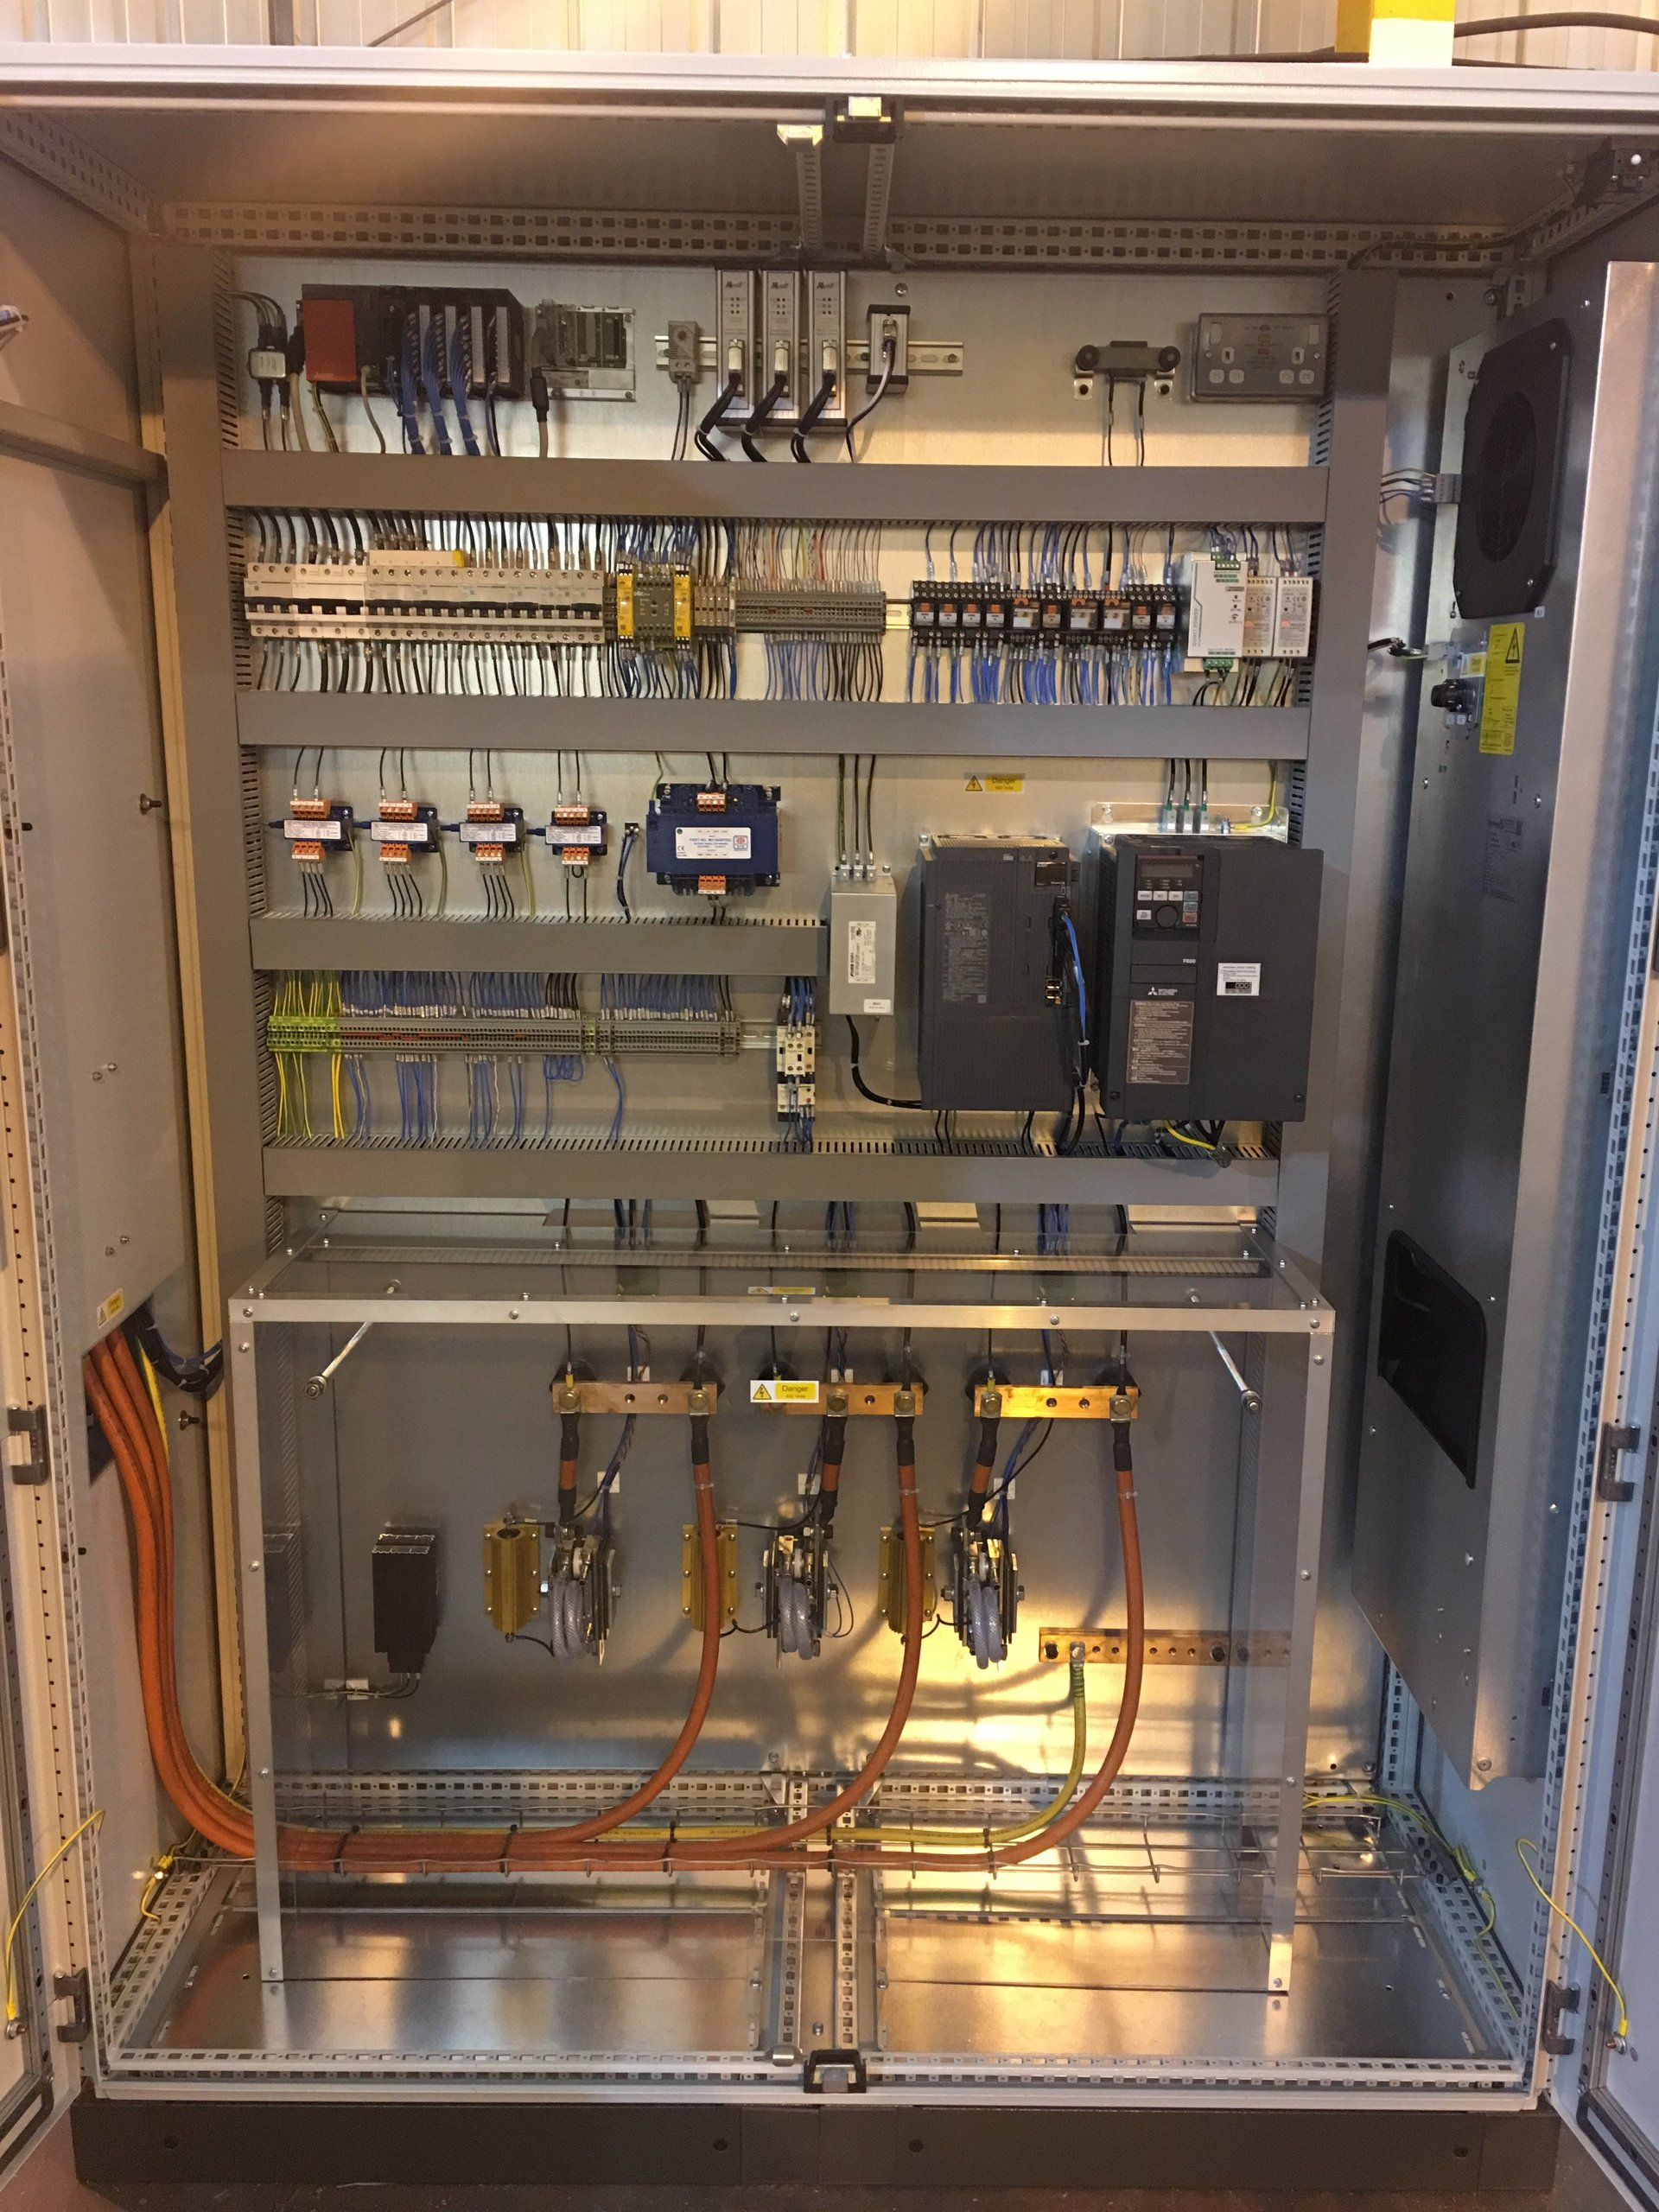 Photo C on Electrical Relay Numbering System